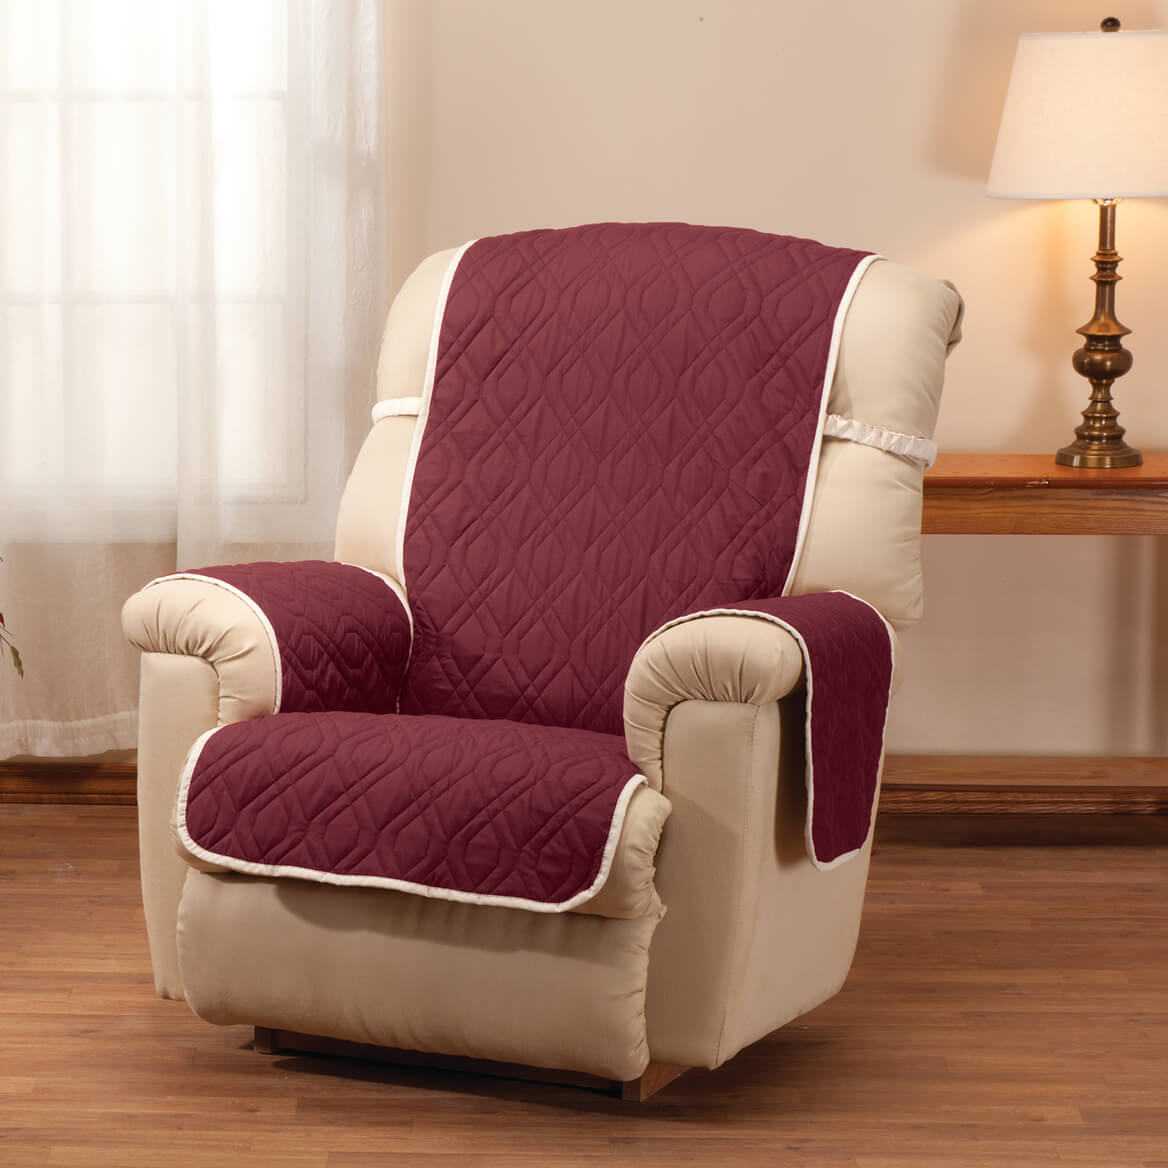 chair covers for purchase 24 dining chairs deluxe reversible waterproof recliner cover miles